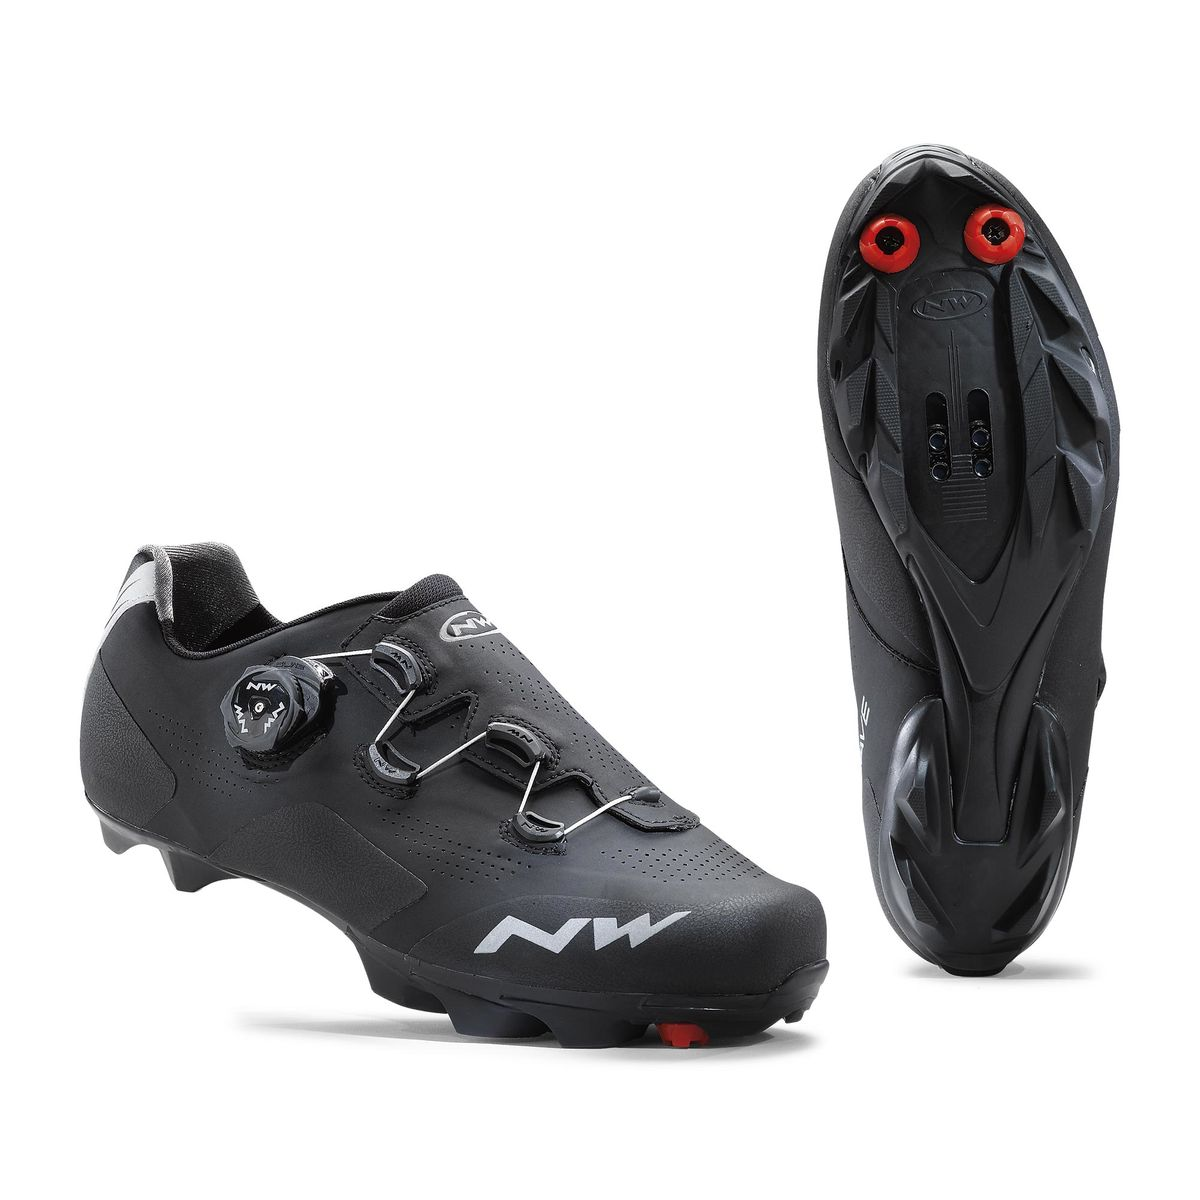 RAPTOR TH MTB Winterschuhe